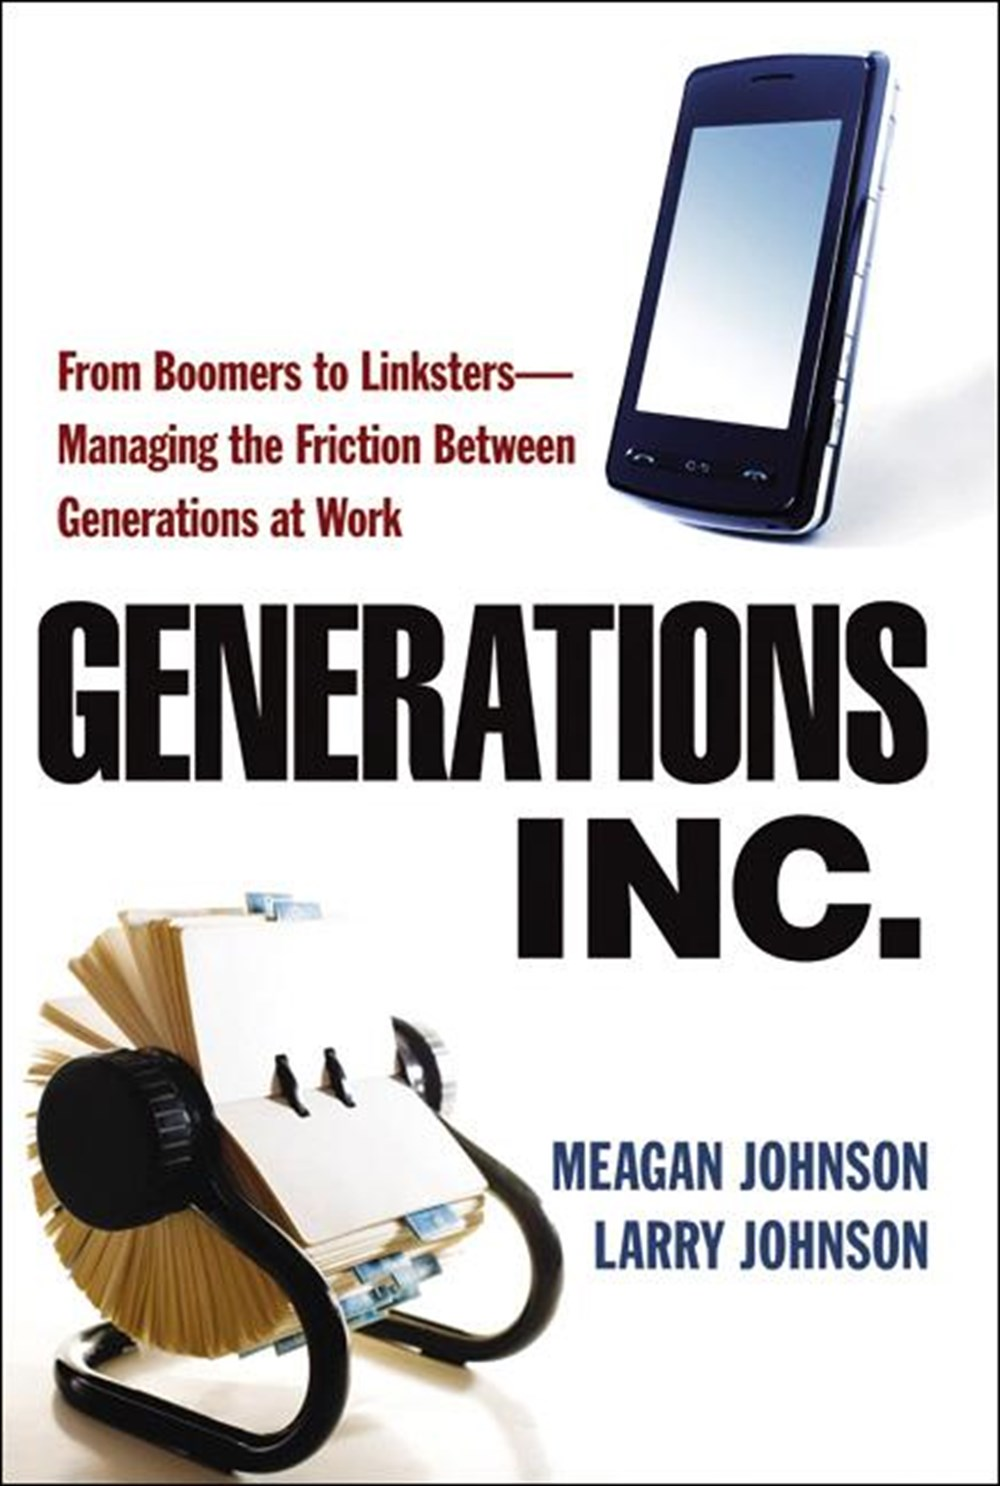 Generations, Inc. From Boomers to Linksters--Managing the Friction Between Generations at Work